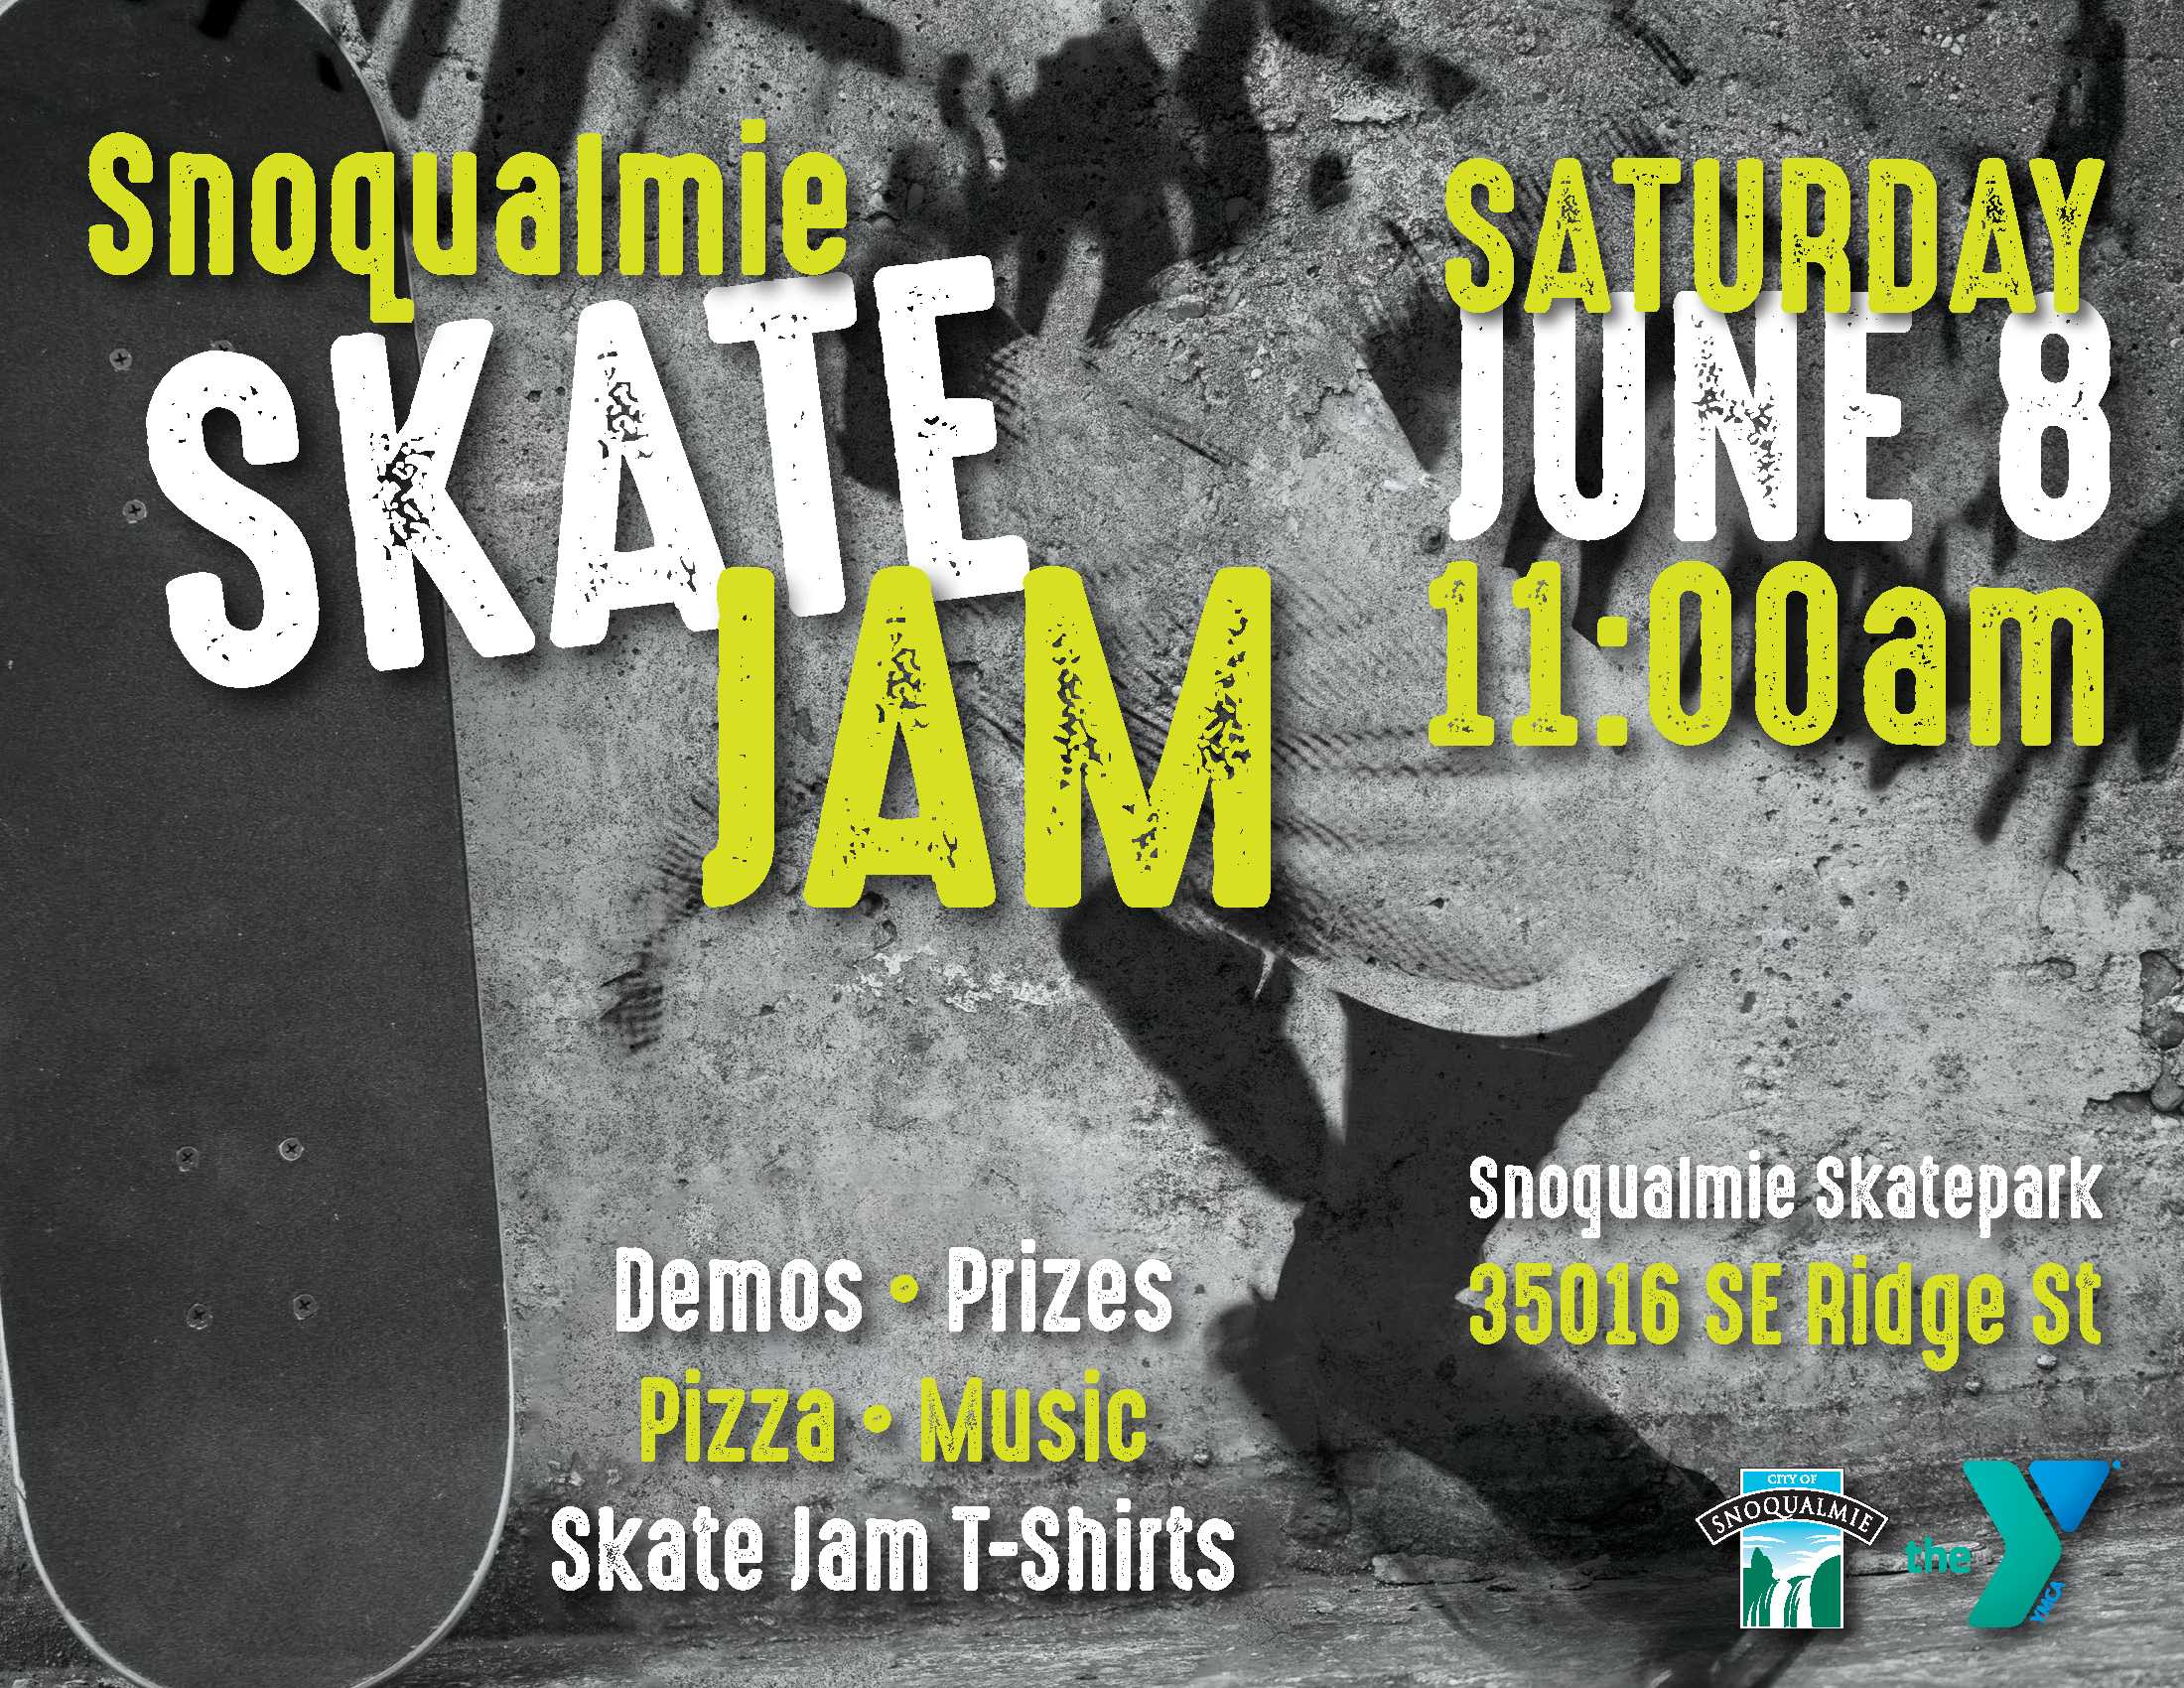 This is the Snoqualmie Skate Jam Poster.